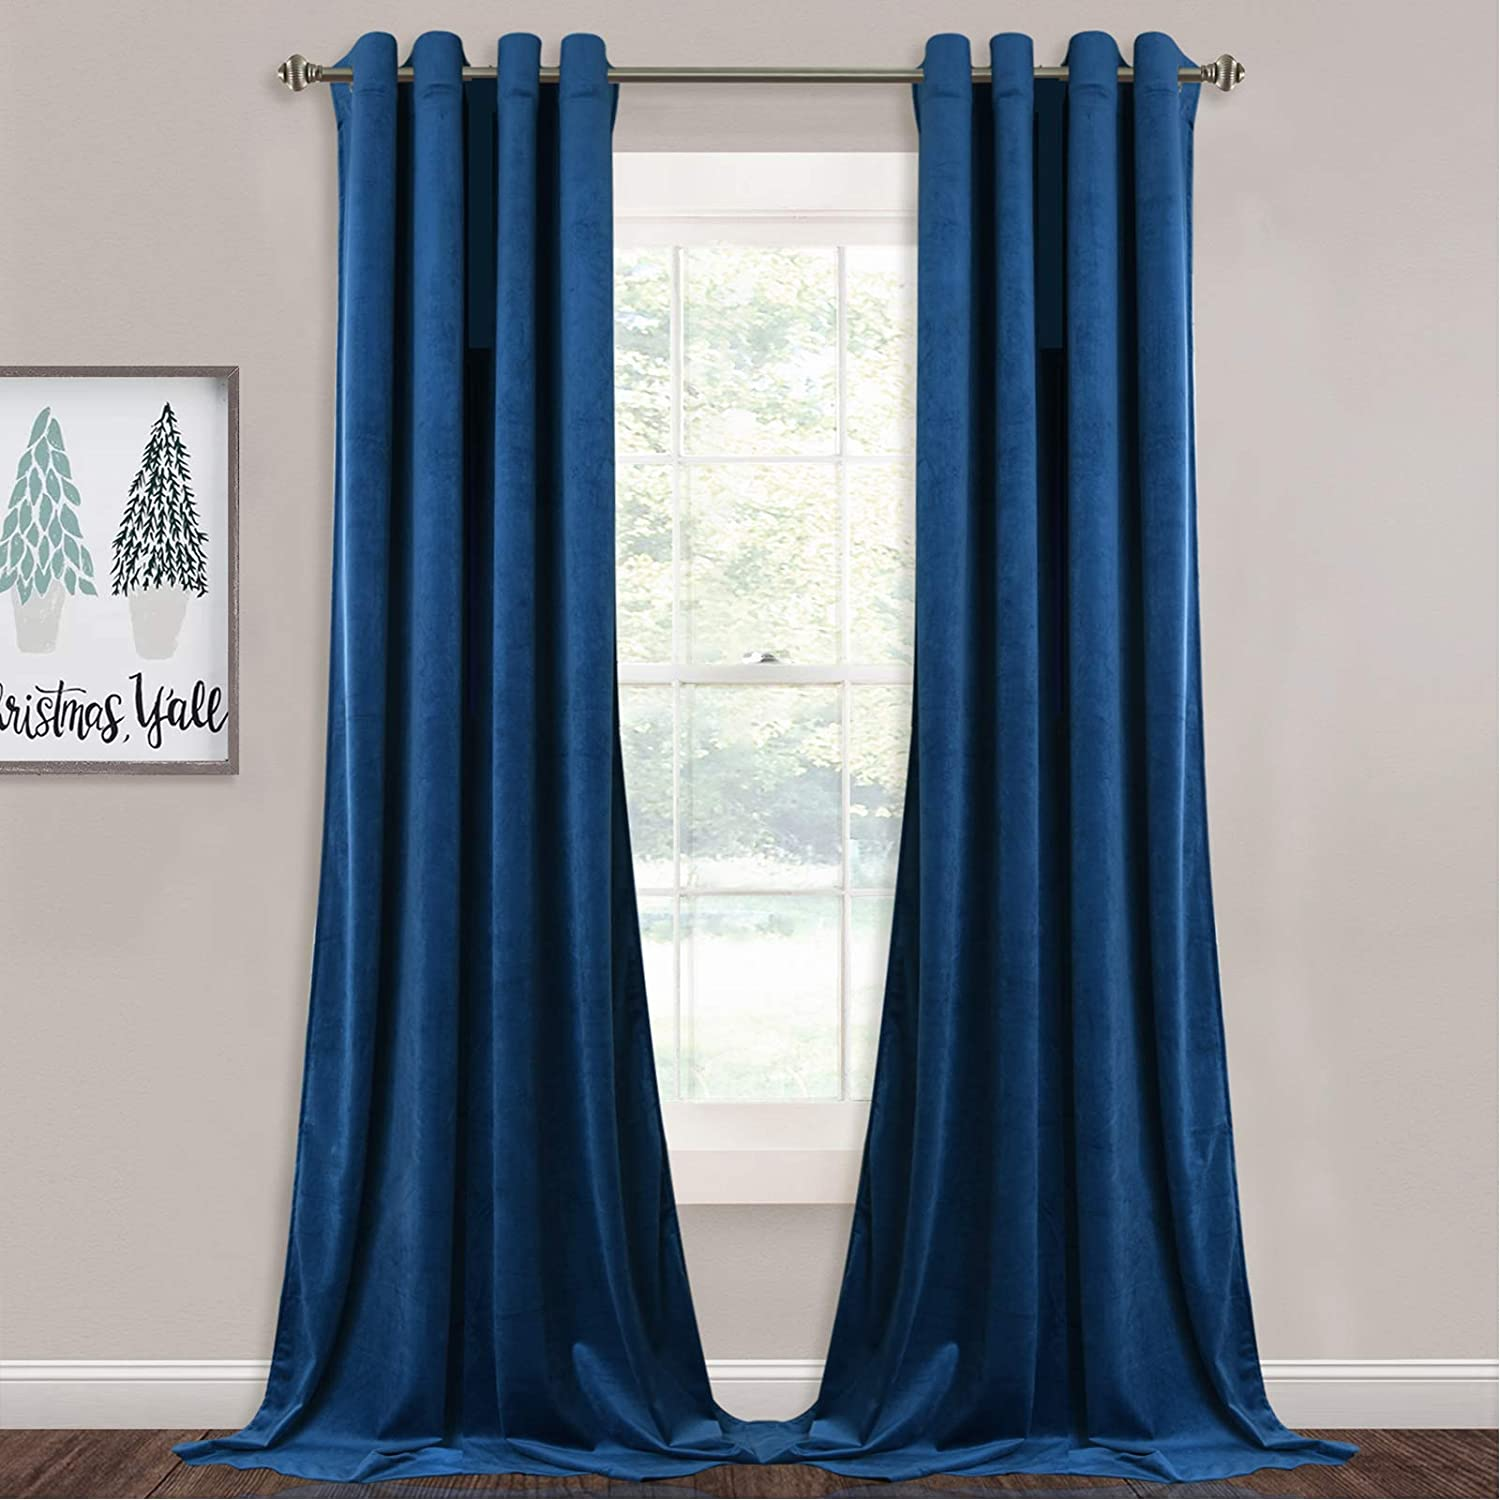 """StangH Blue Velvet Curtains - Blackout Warm Soft Velvet Curtains Thermal Insulated Privacy Panels for French Door / Parlor, Royal Blue, W52 x L96 inches, 2 Panels W52"""" x L96"""" Royal Blue"""